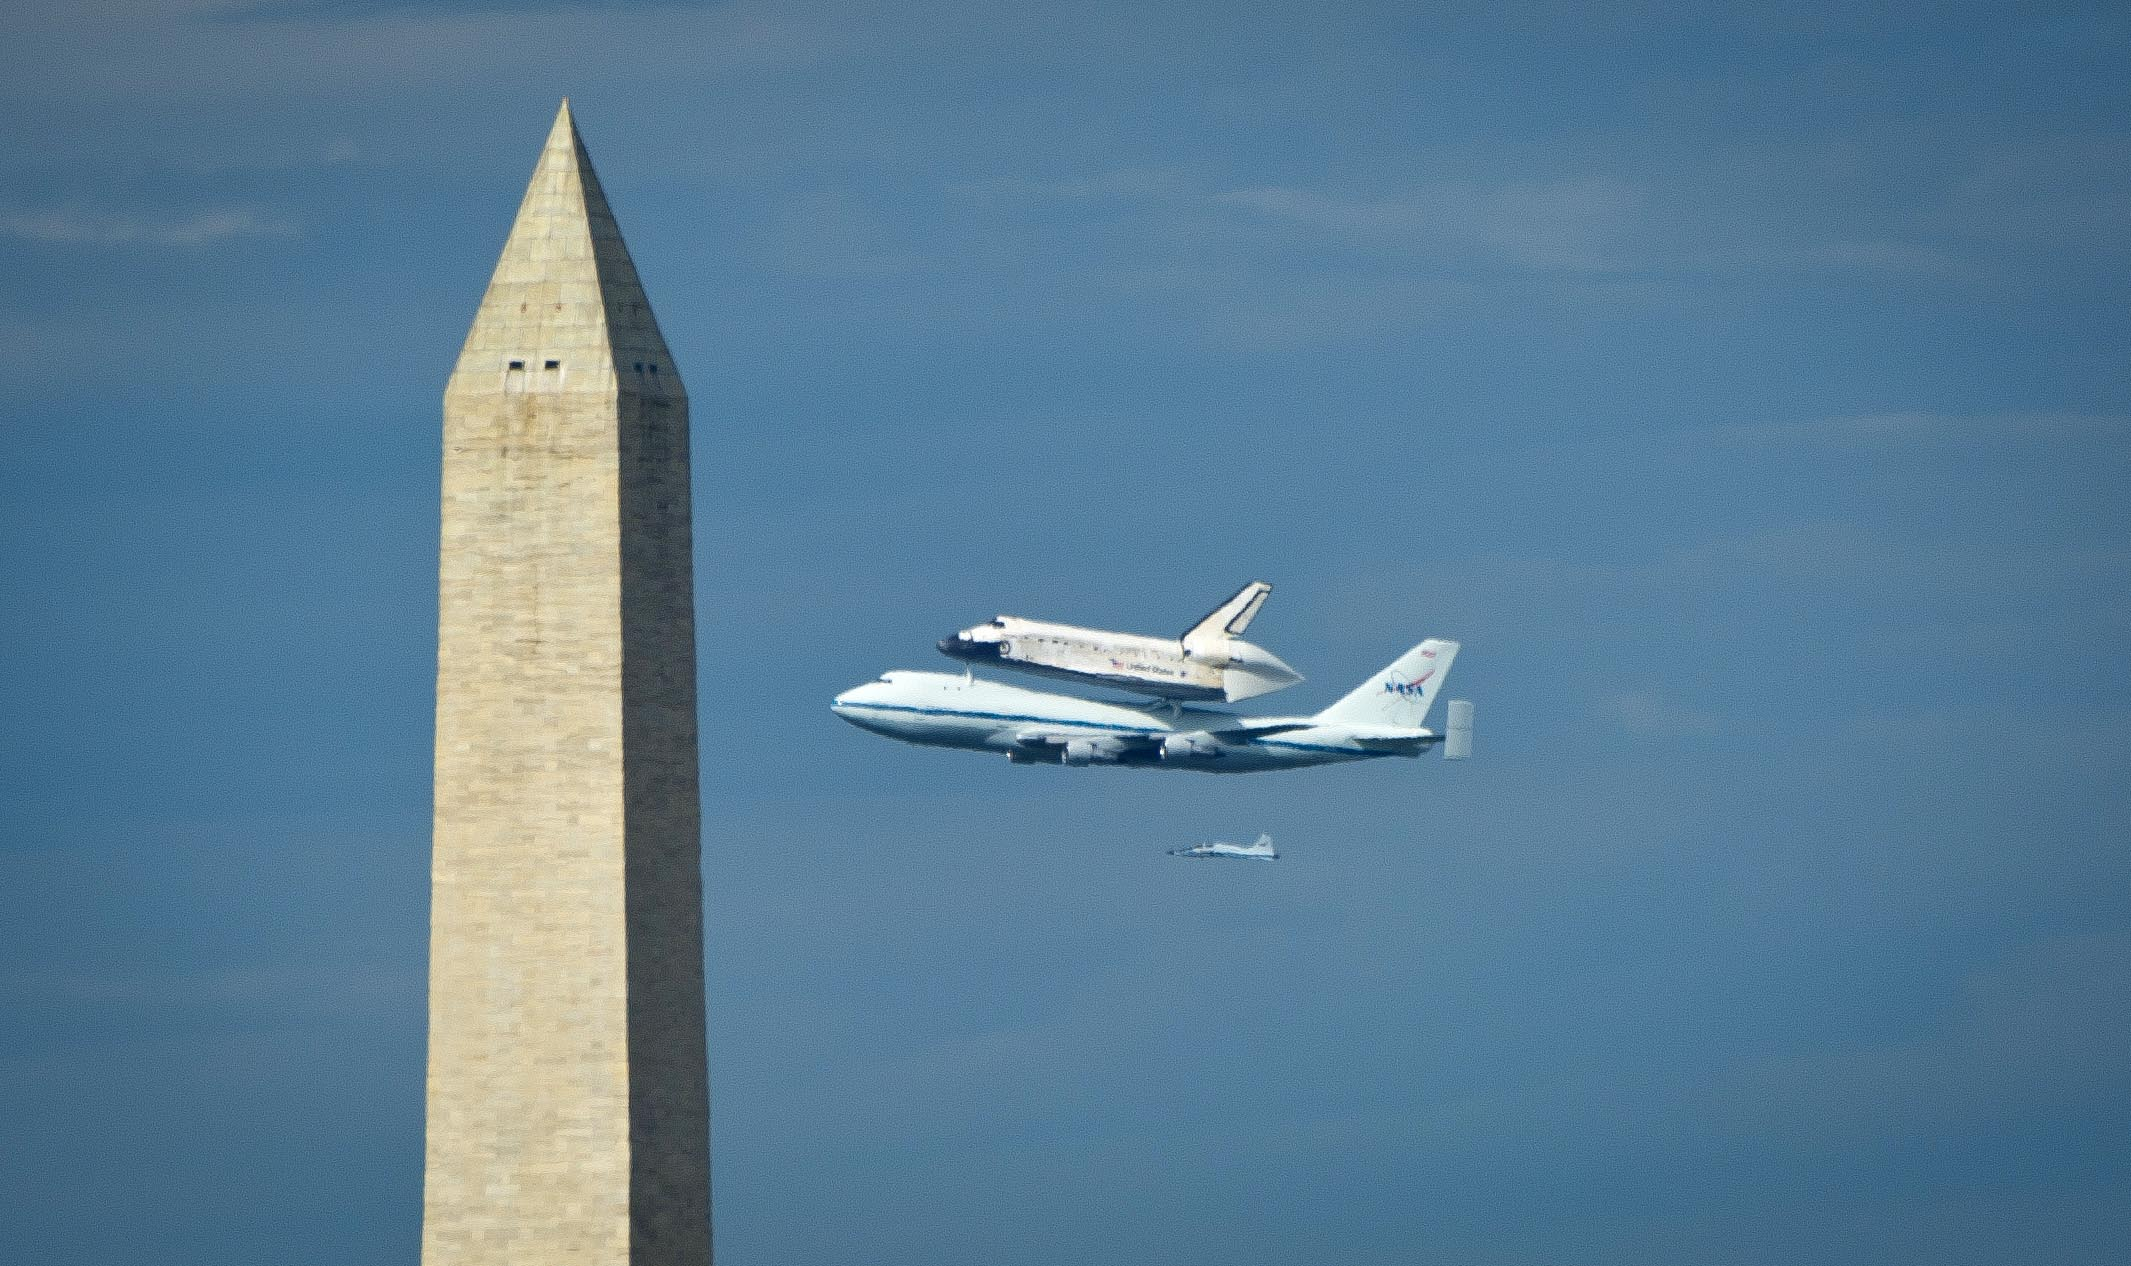 Space Shuttle Discovery Flies Over Washington